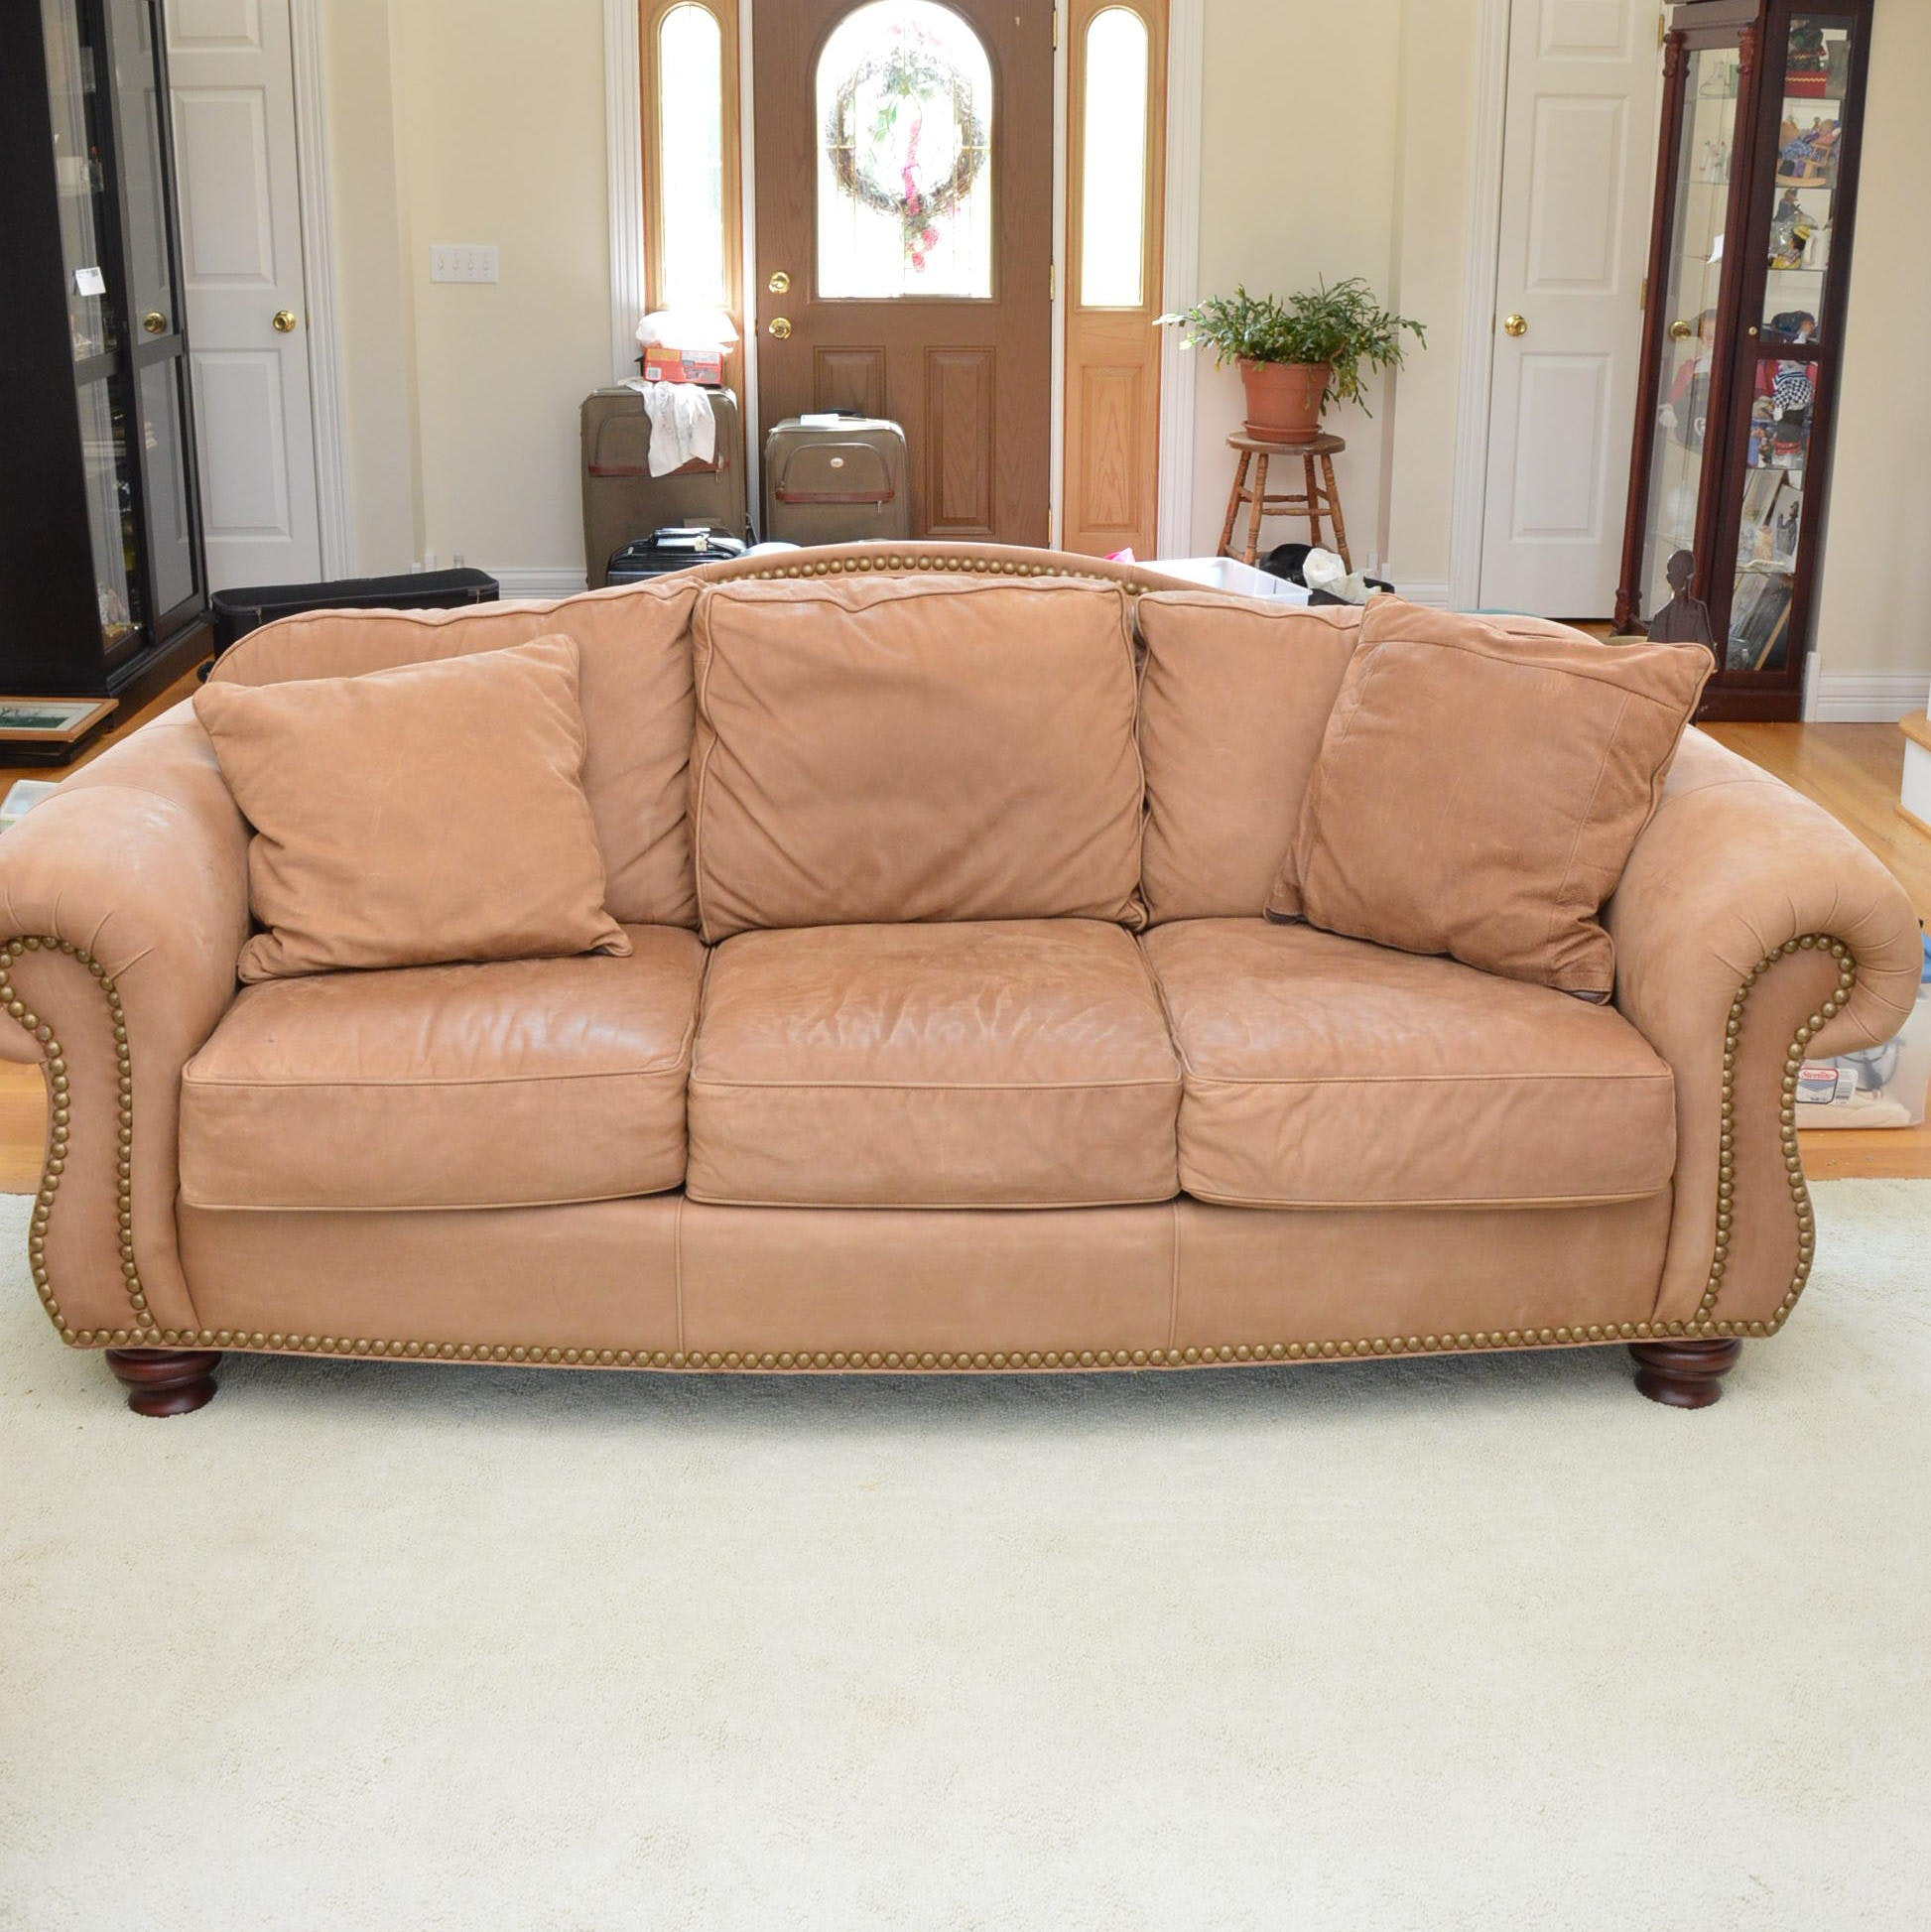 Beautiful Nubuck Style Leather Sofa by Thomasville Beautiful - Best of nubuck leather sofa New Design